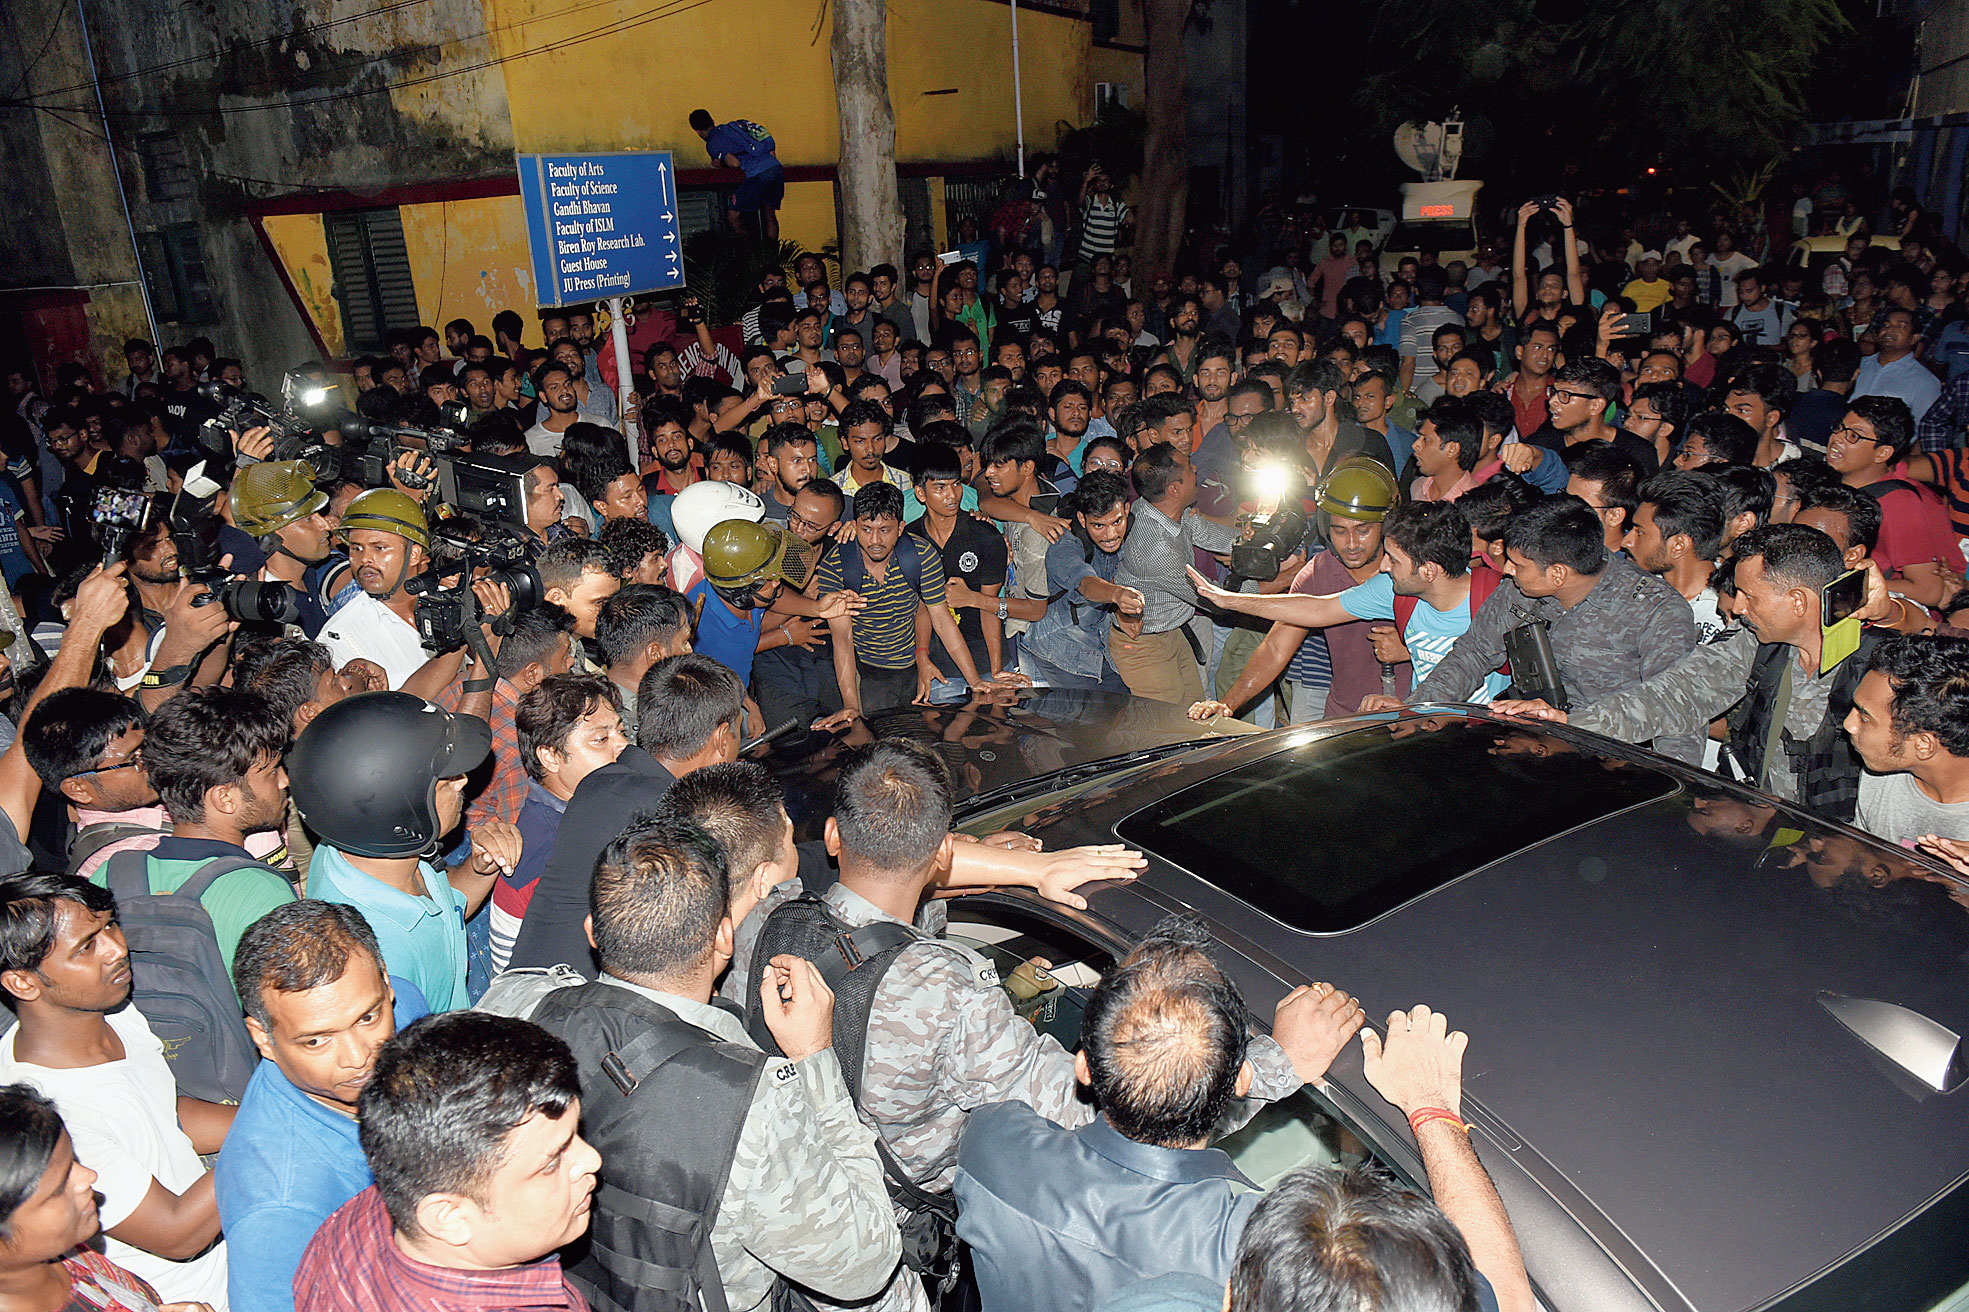 Governor Jagdeep Dhankhar and Union minister Babul Supriyo (in car) try to leave Jadavpur University as a crowd surrounds the vehicle at 7.14pm on Thursday.